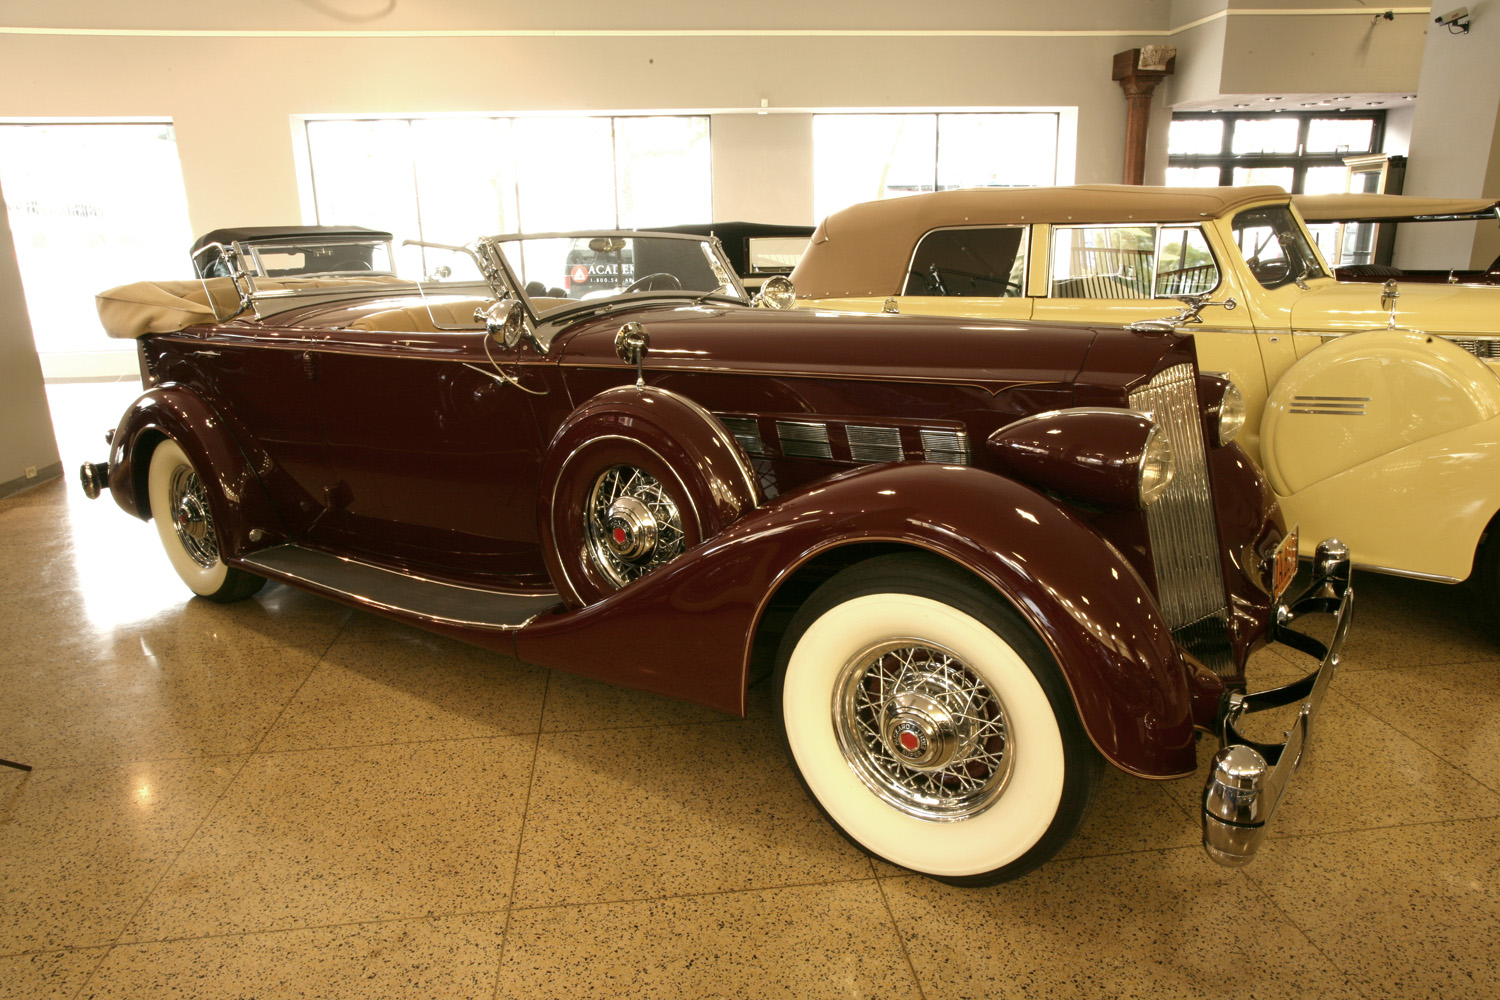 1936 Packard Super 8 Model 1404 Sport Phaeton